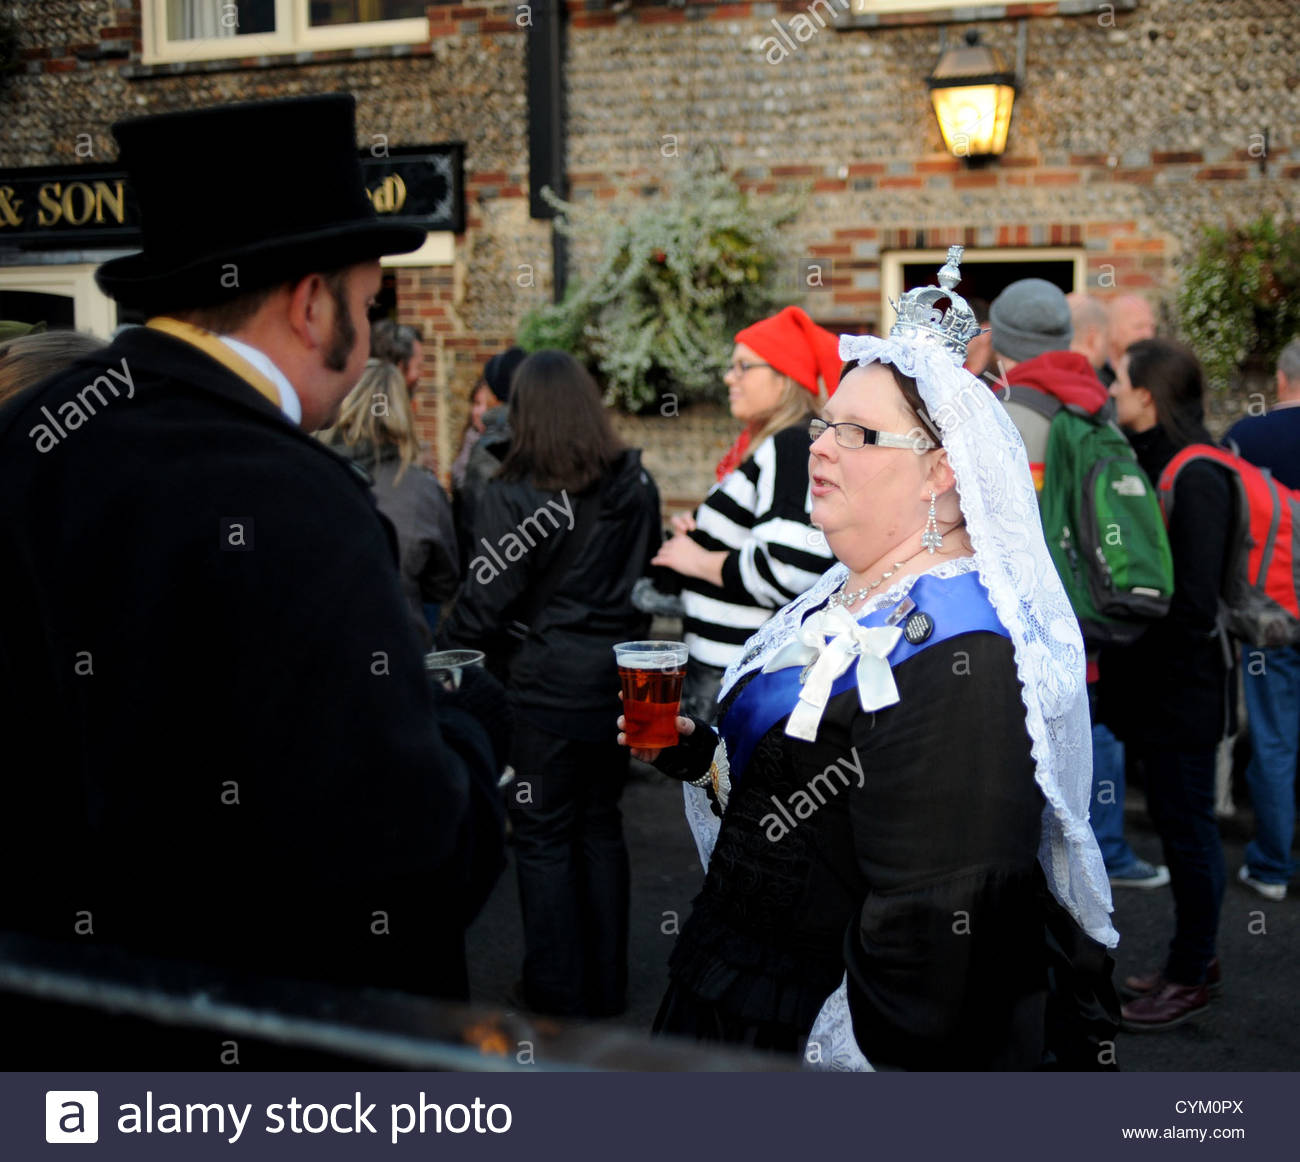 Woman dressed as Queen Victoria drinking pint of beer at Lewes Bonfire Celebrations 2012 - Stock Image